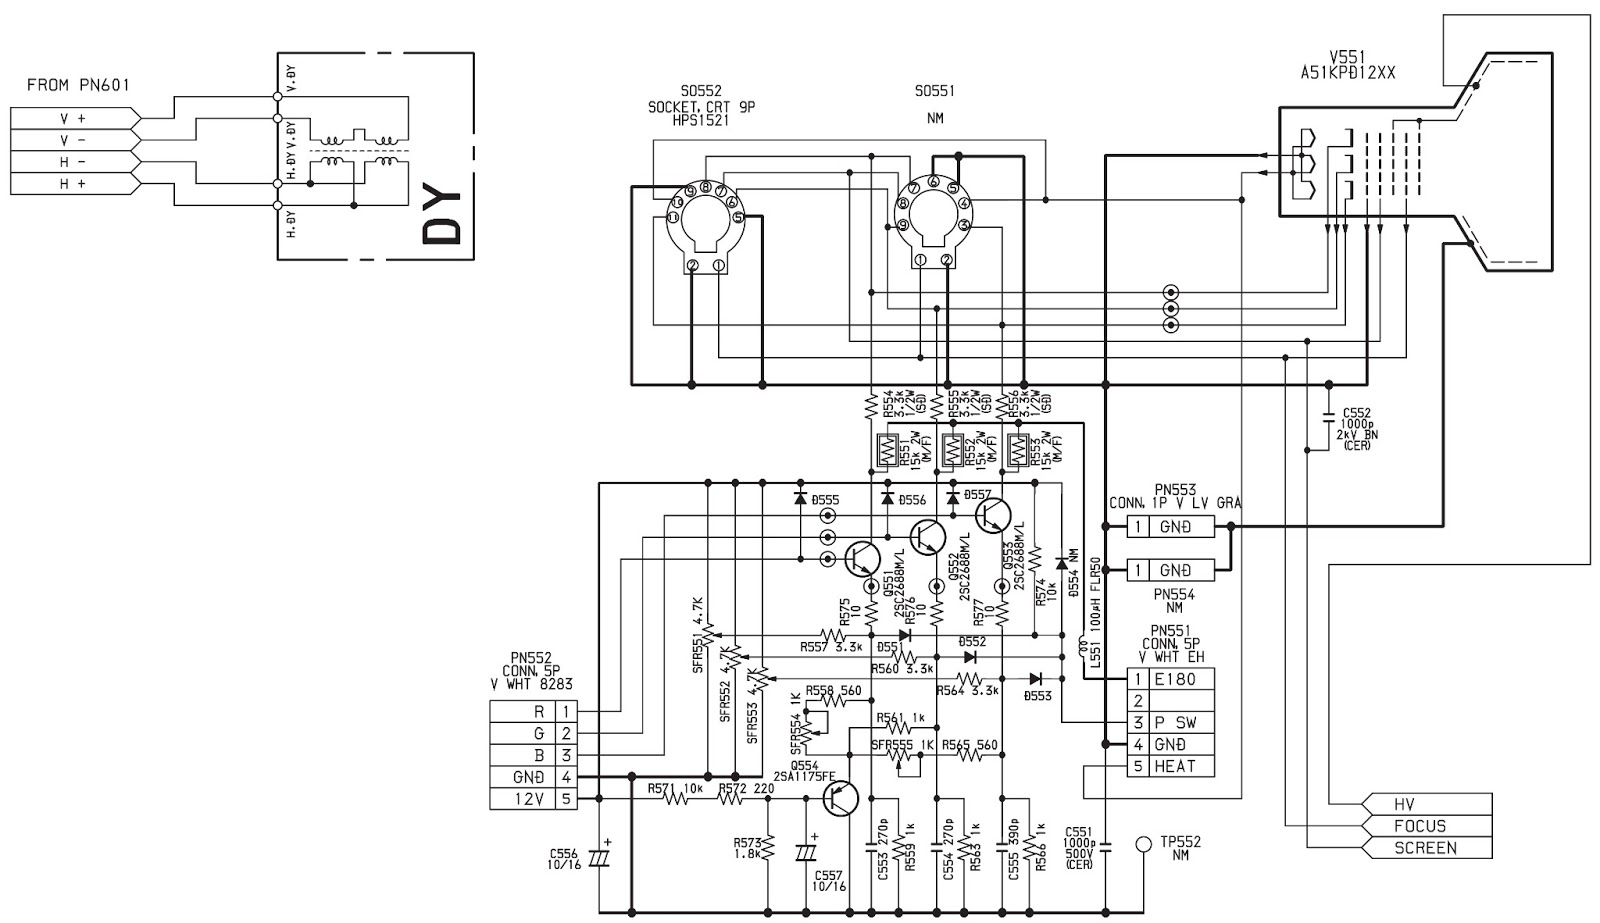 aiwa tv - a-219 - schematic diagram - using ics